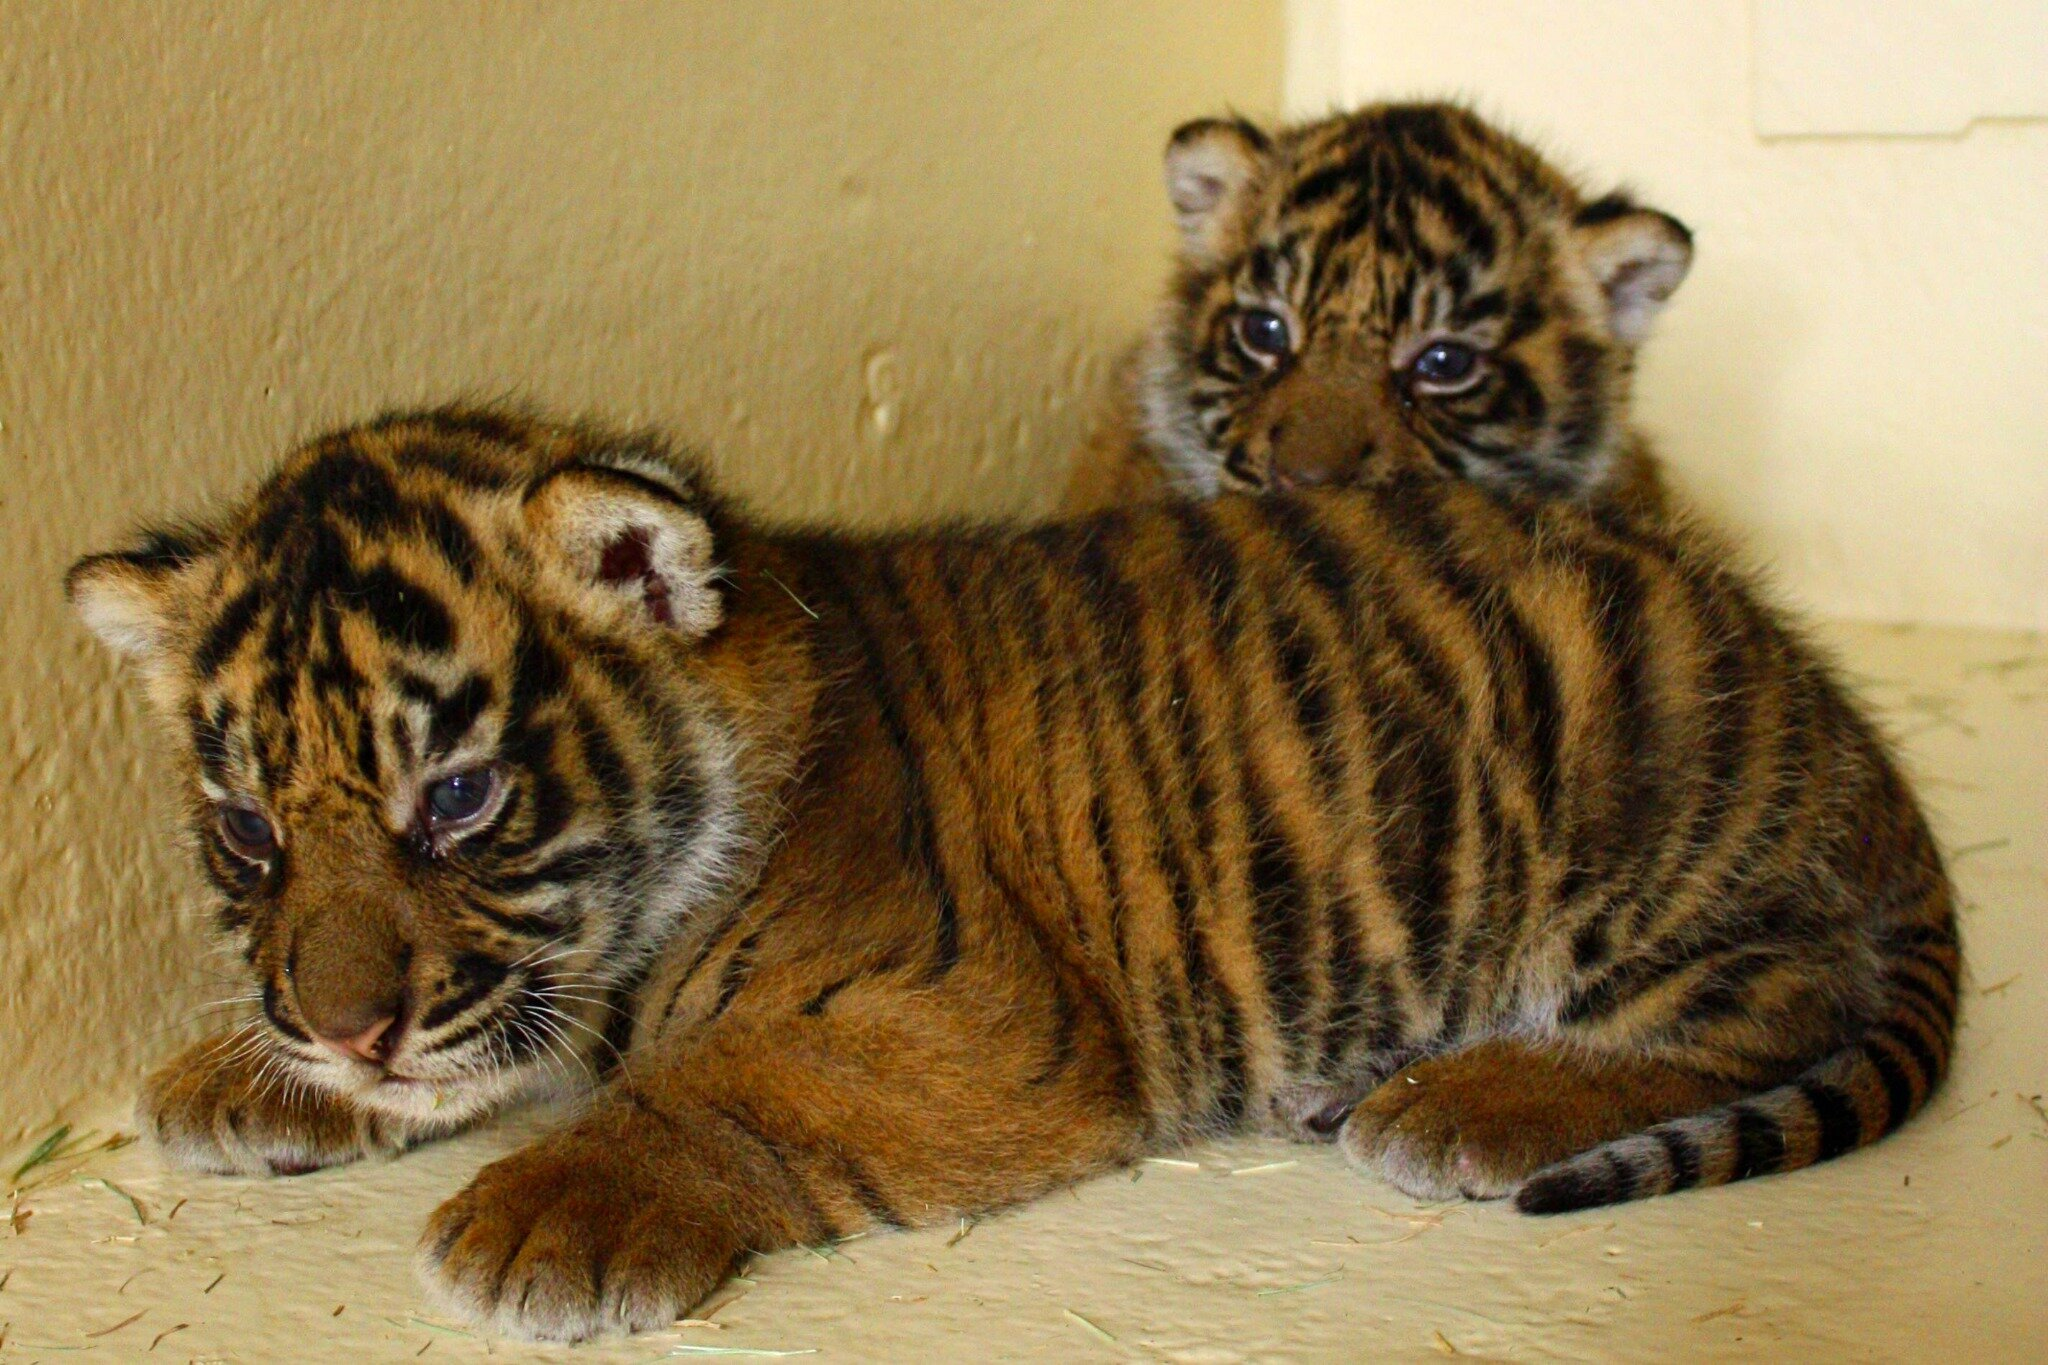 """""""Welcome to the Jungle, we've got tiger cubs. We've got something something something that rhymes with tiger cubs."""" http://t.co/e53o6w43"""